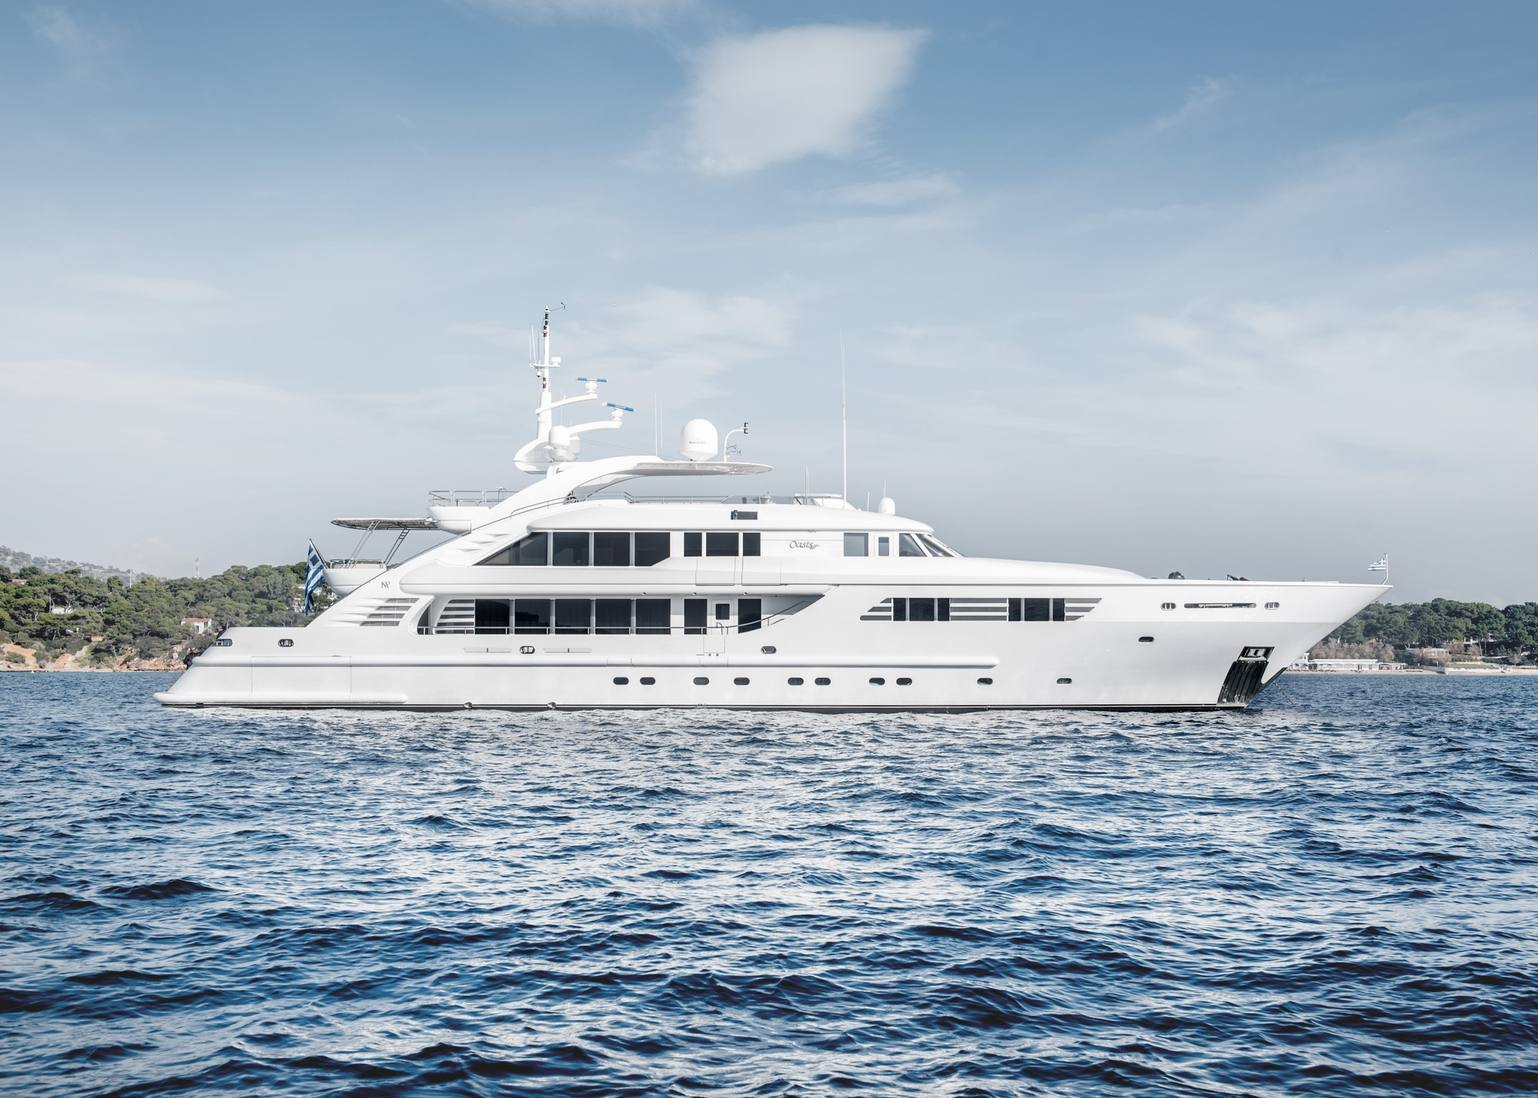 superyacht OASIS at anchor on a Greece yacht charter